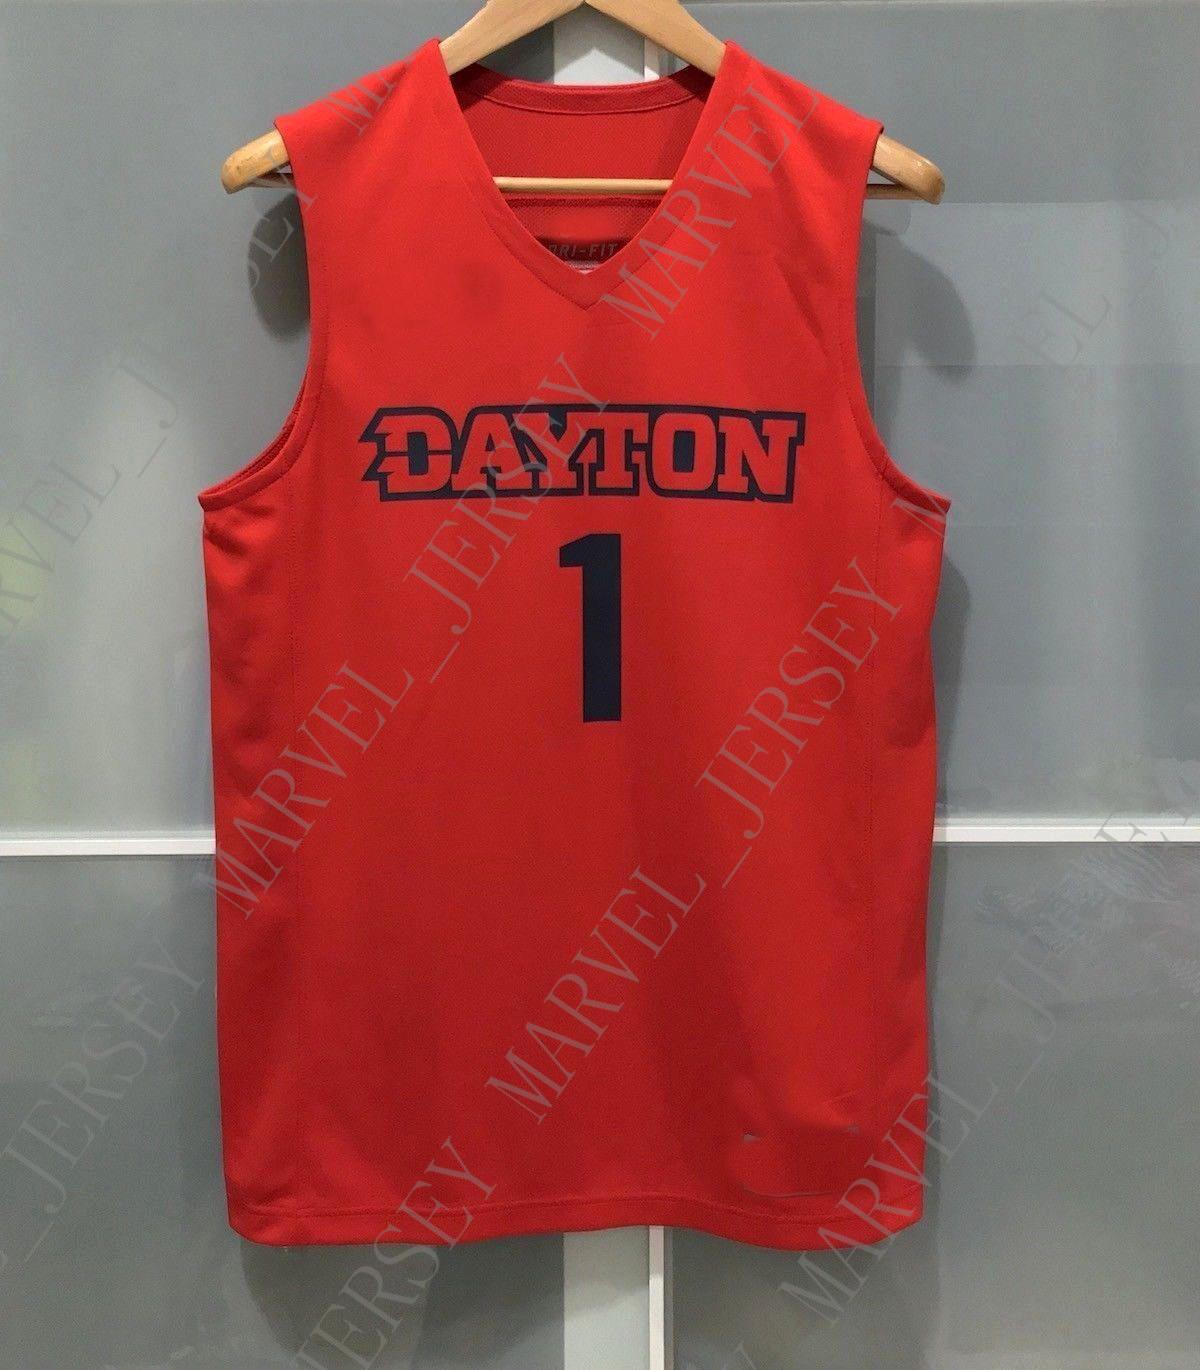 on sale 602db c3b9c Cheap custom DAYTON FLYERS #1 NCAA MENS BASKETBALL JERSEY RED Stitched  Customize any number name MEN WOMEN YOUTH XS-5XL